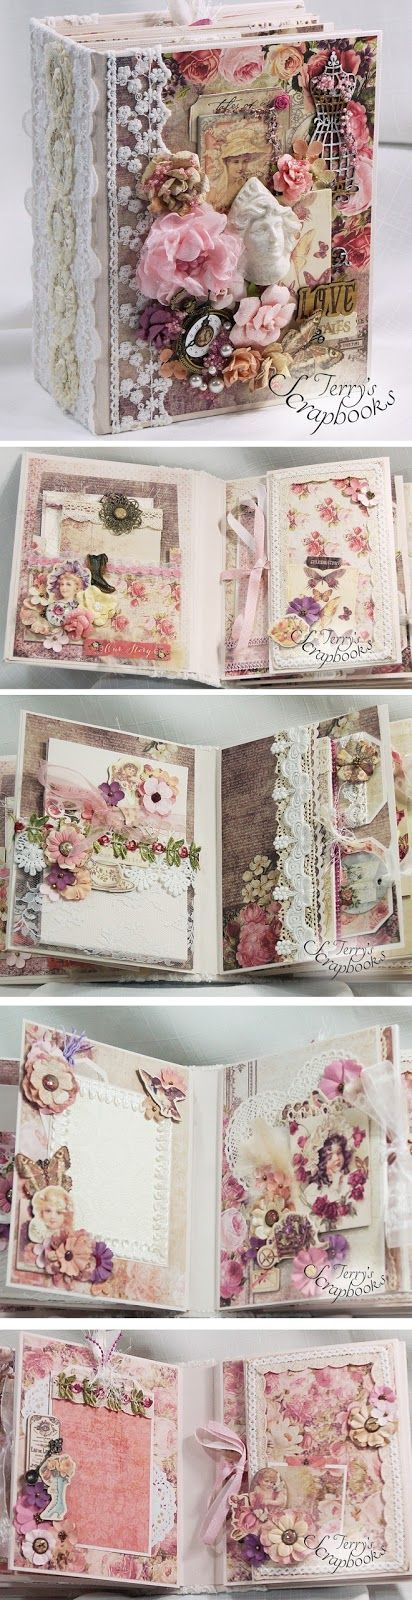 Terry's Scrapbooks: Prima Tales Of You & Me Mini Album Reneabouquets DT project